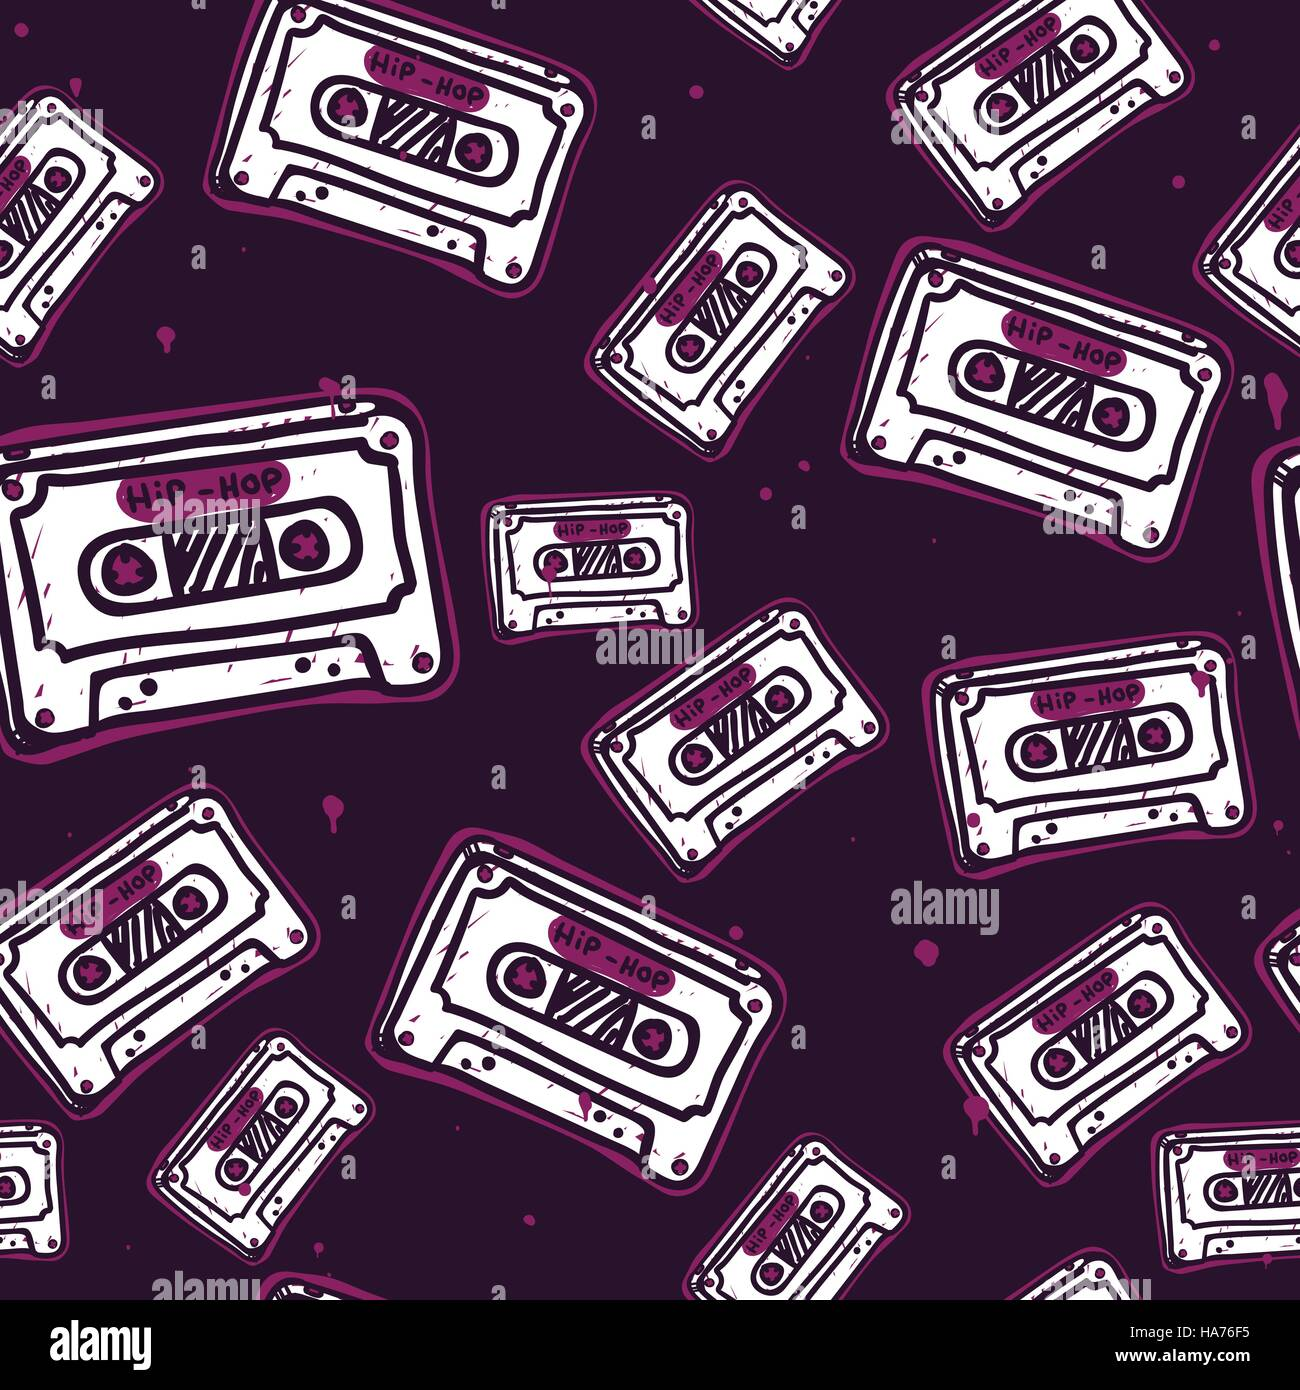 Graffiti Seamless Pattern Stock Image